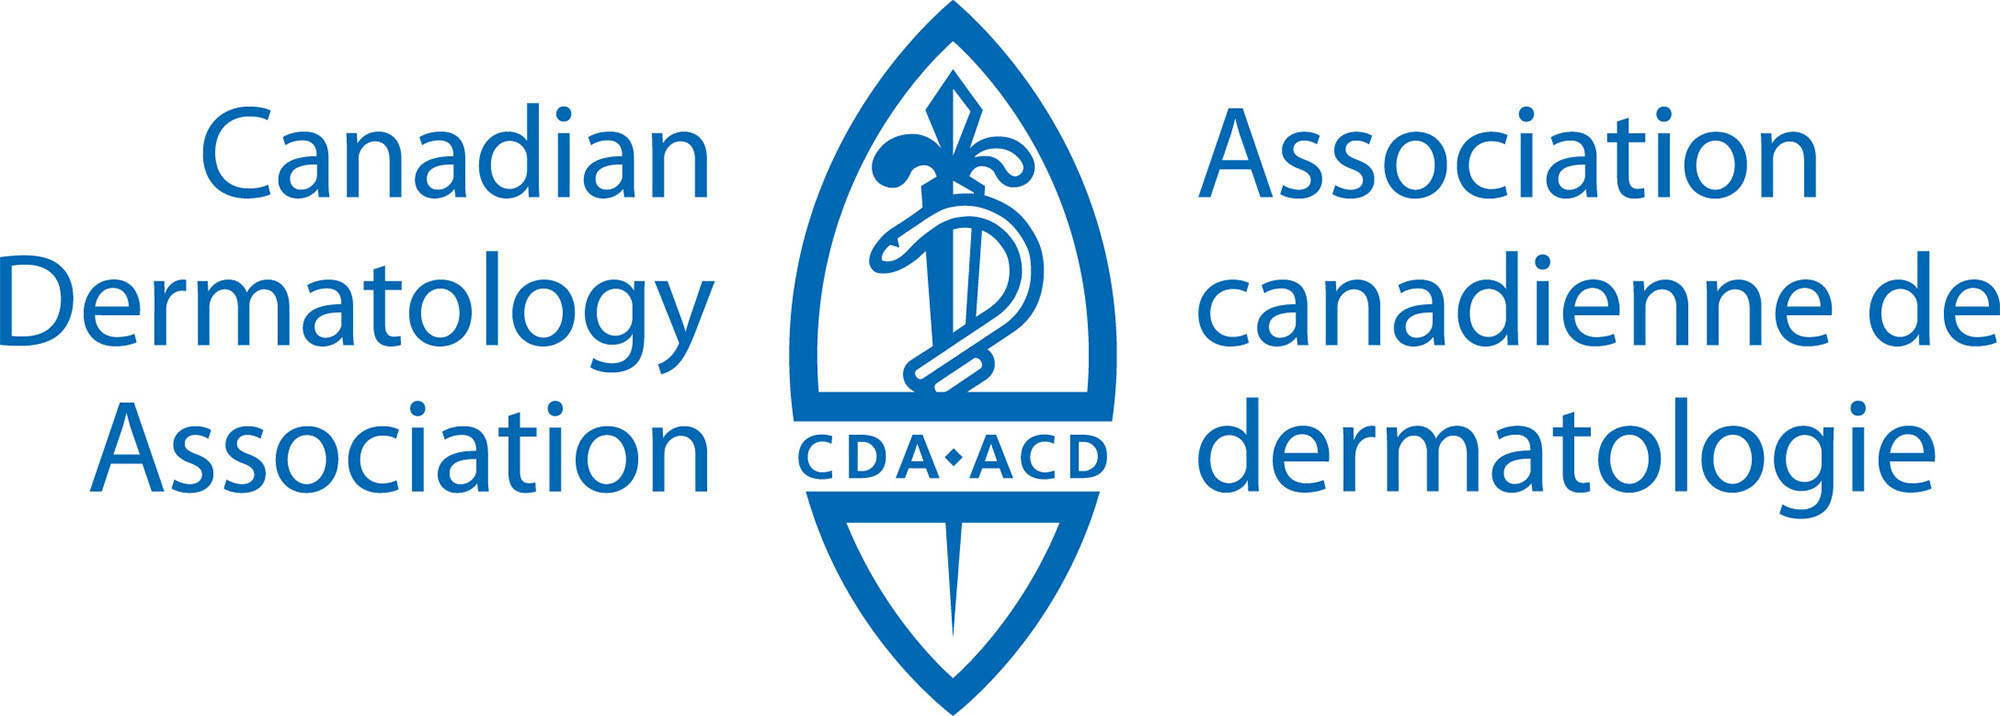 The Canadian Dermatology Association - Canada's experts on skin, hair and nails. (CNW Group/Canadian Dermatology Association)